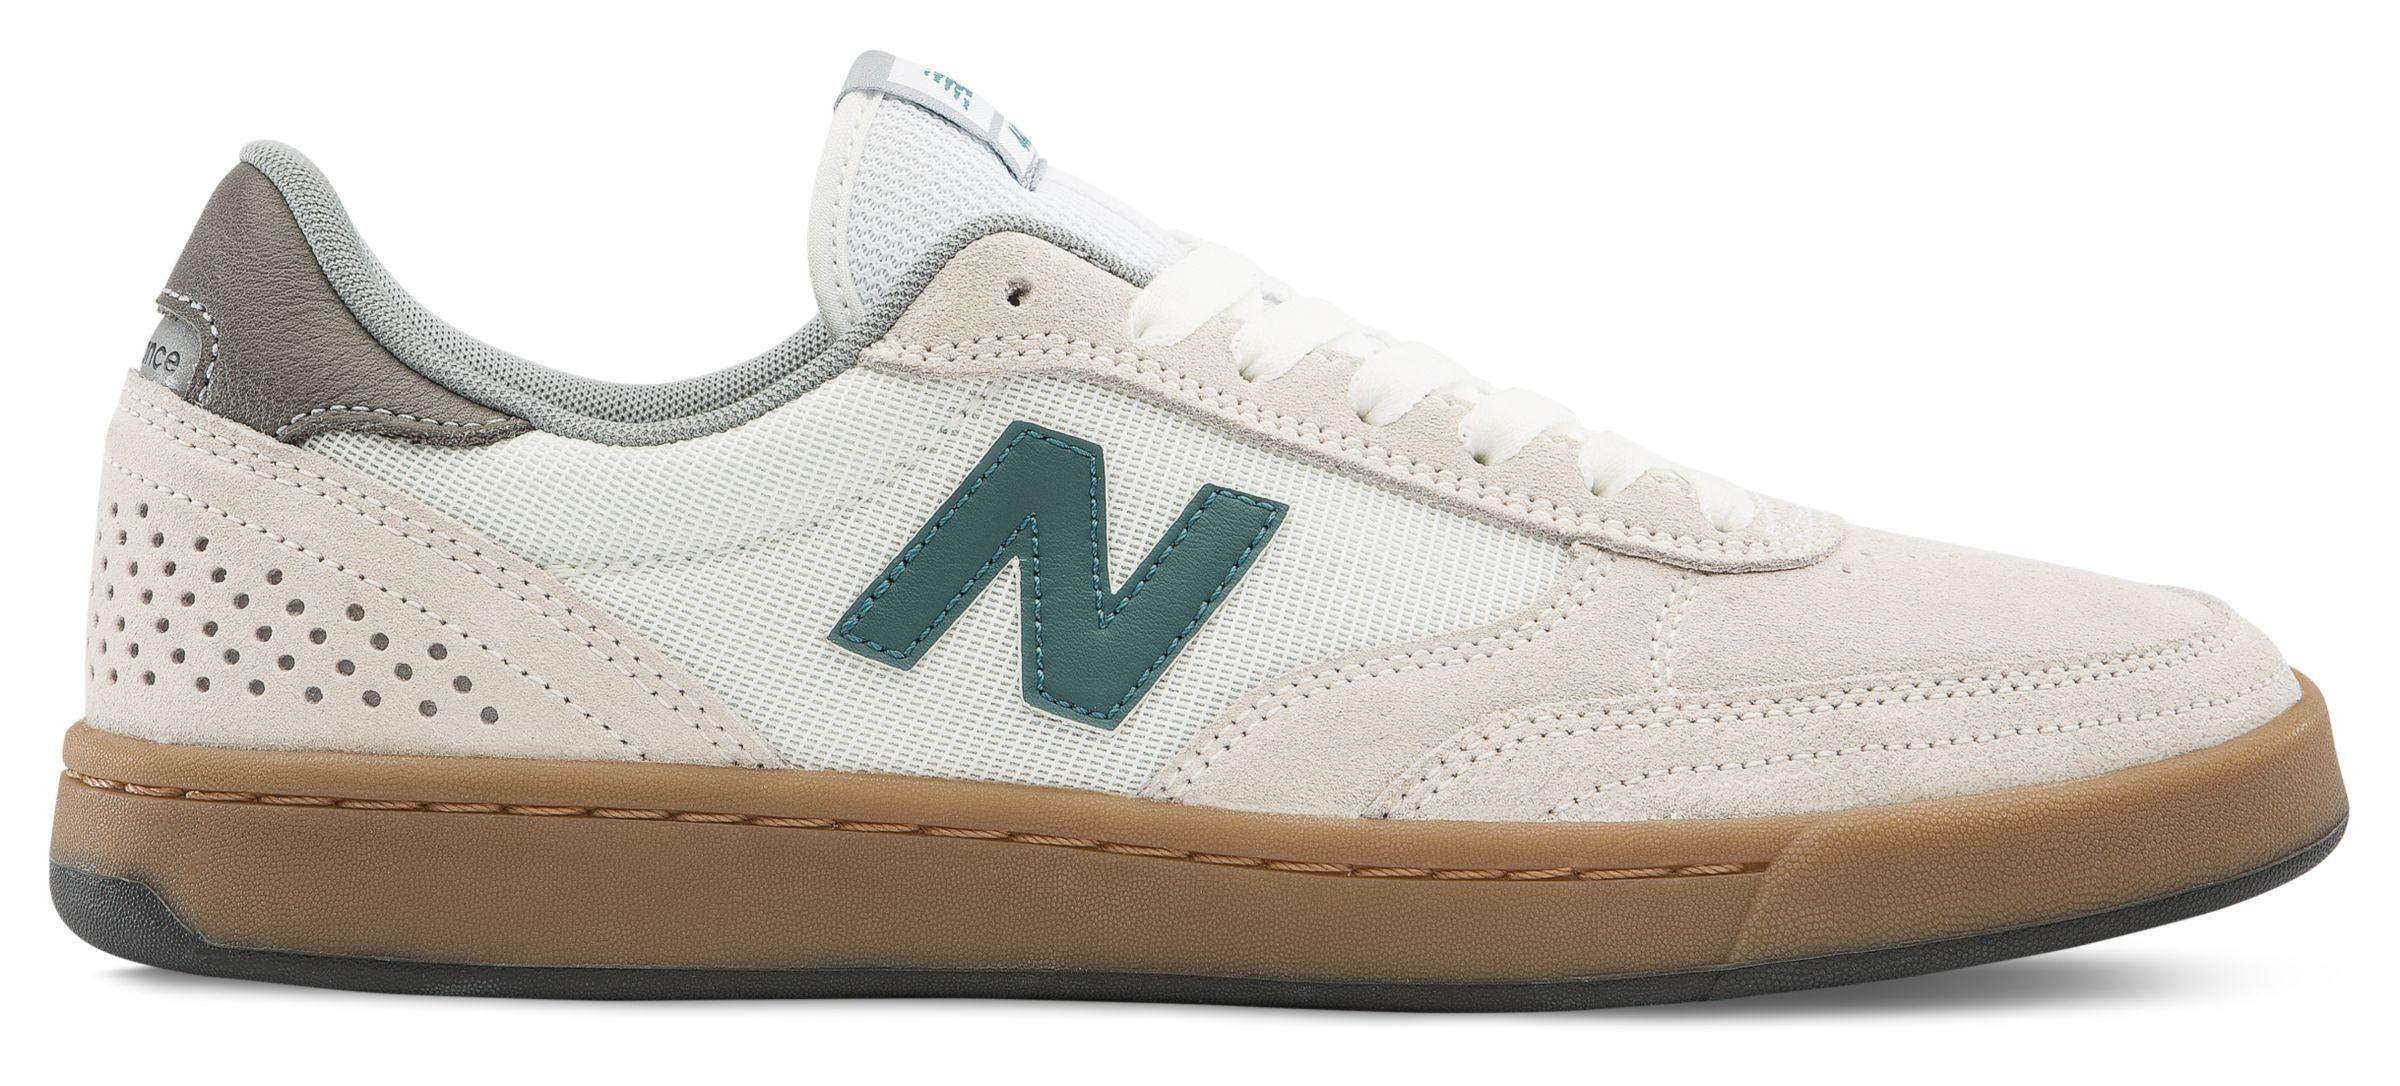 New Balance Suede 440 for Men - Lyst